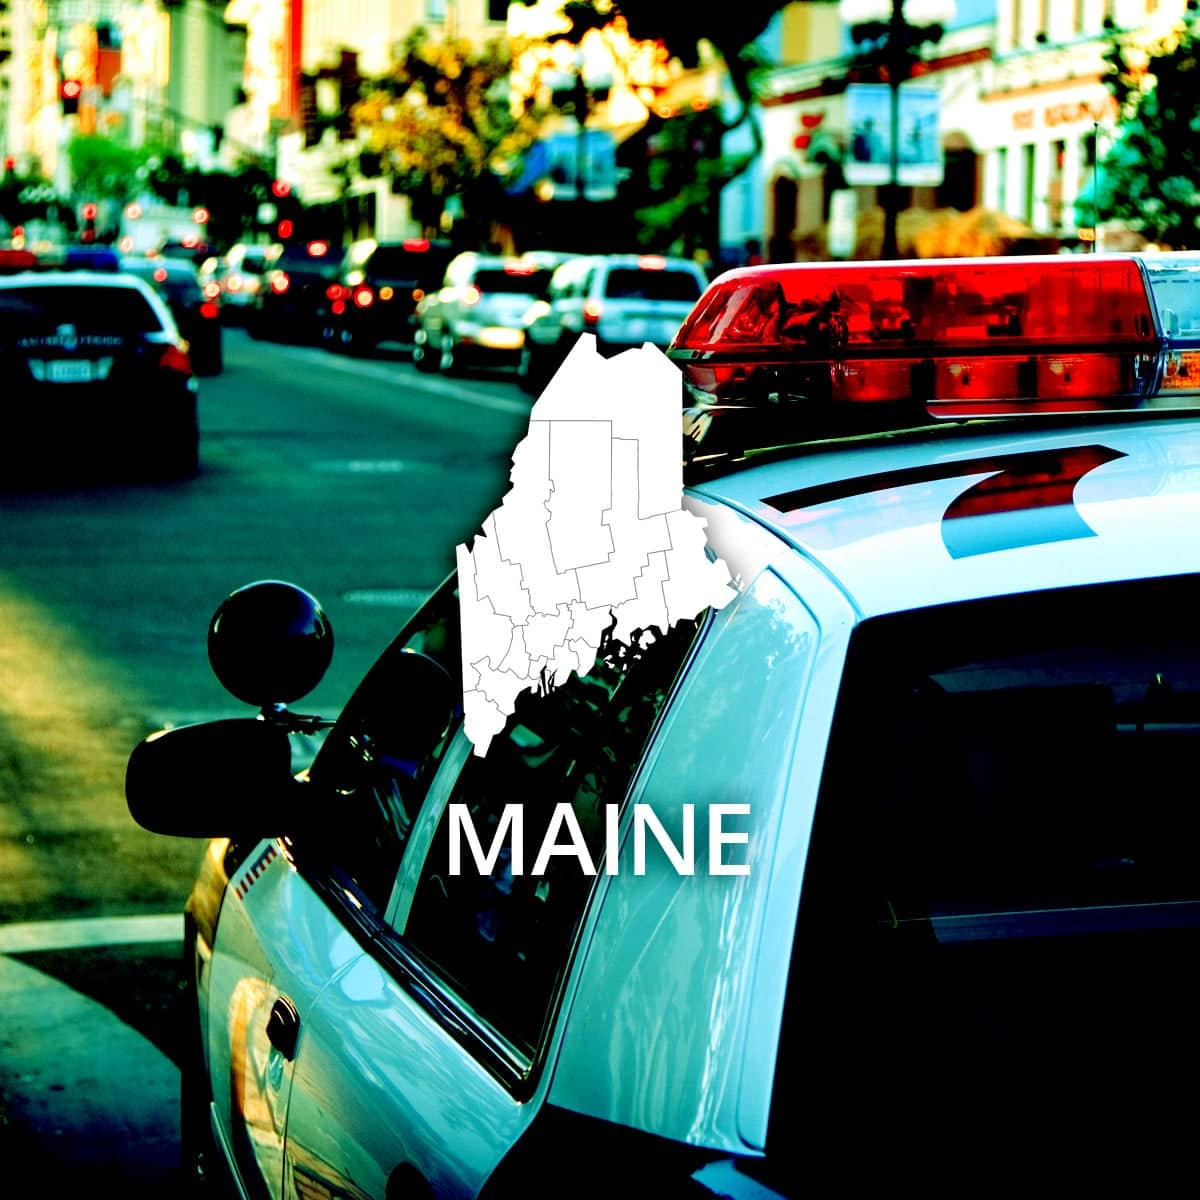 maine sex offender registry requirements washington in North Bay